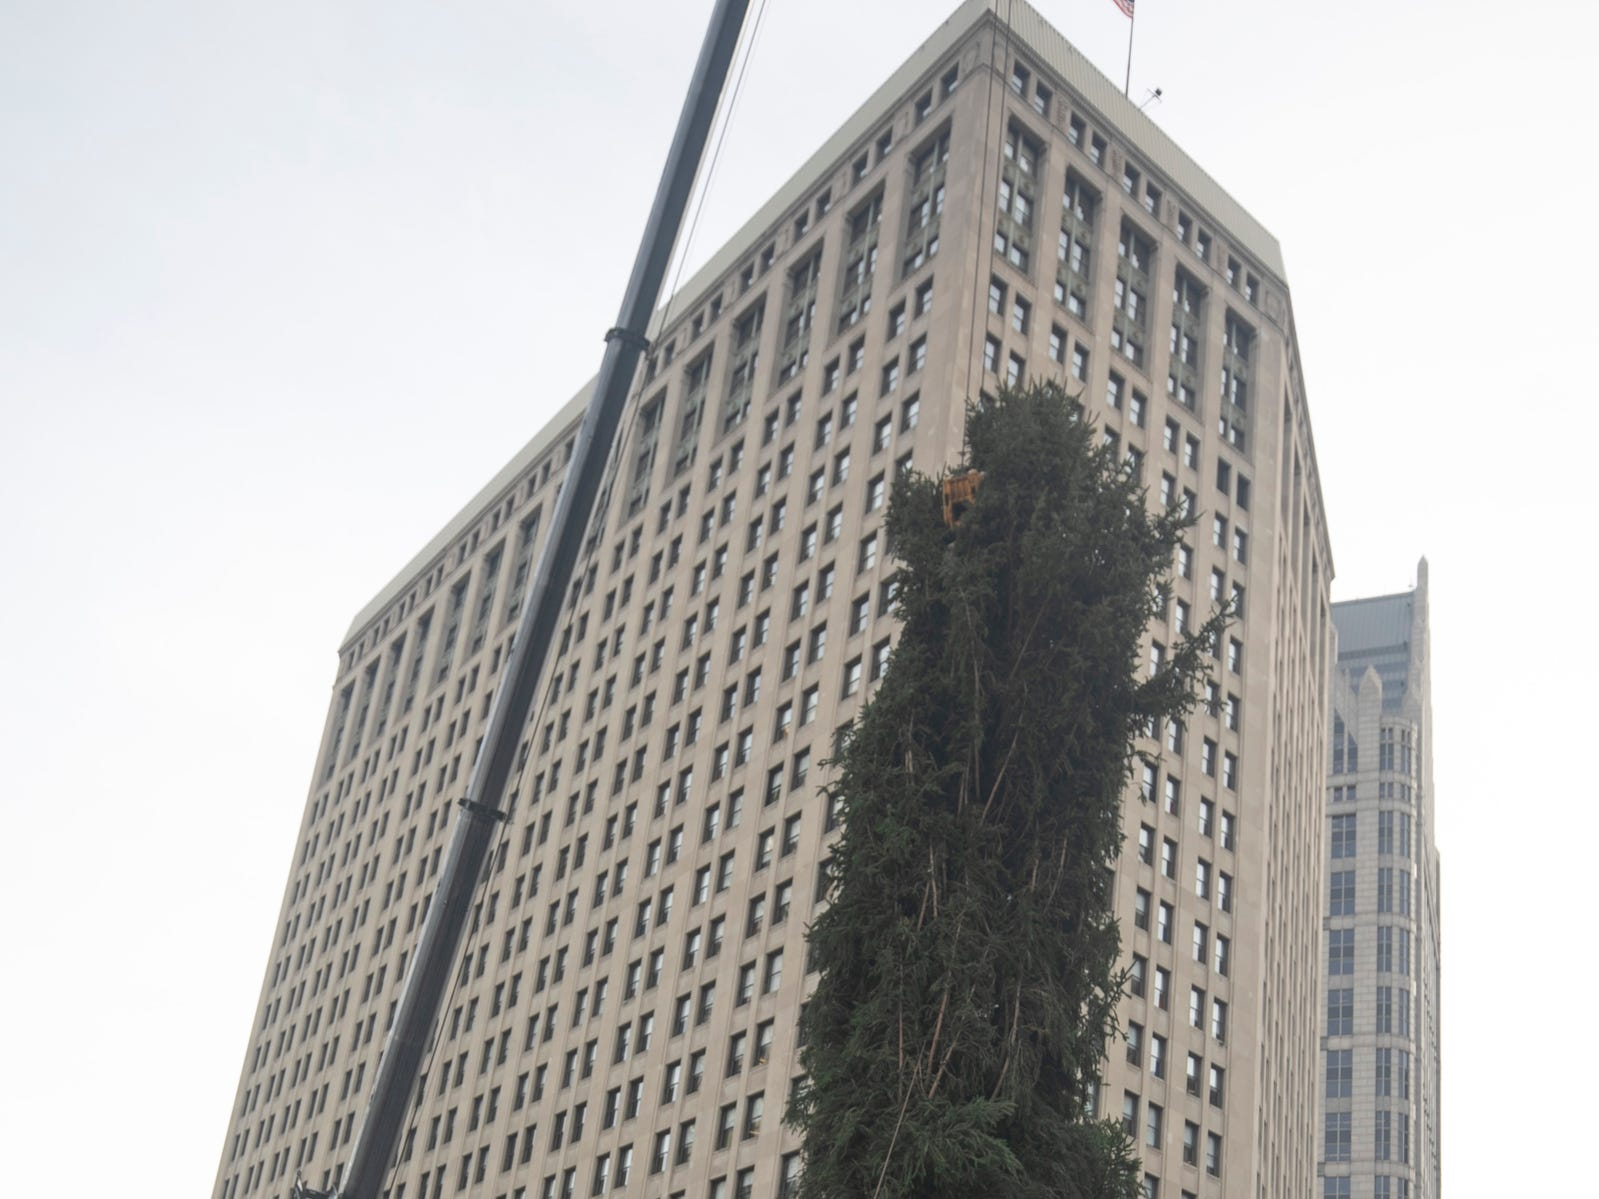 The Downtown Detroit Partnership and DTE Energy Foundation present the 2018 Detroit tree lighting and light up Beacon Park lineup for November 16 ceremonies. Workers install the 60-foot-tall Norway spruce in Campus Martius on Monday, Nov. 5, 2018.